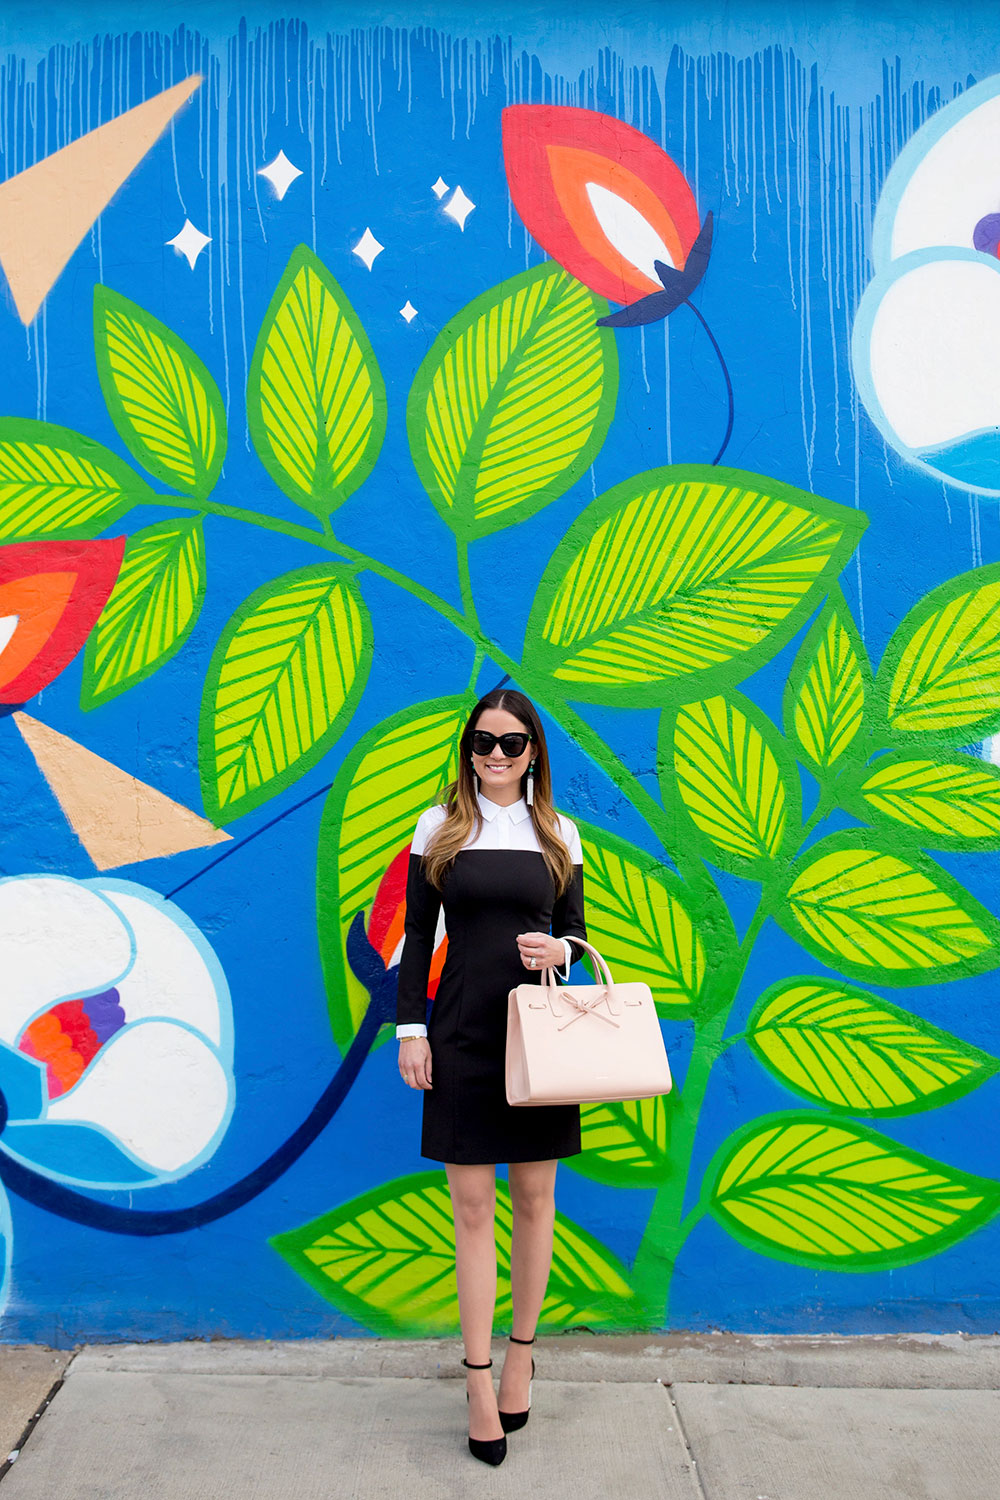 Leaf Mural Wall Chicago